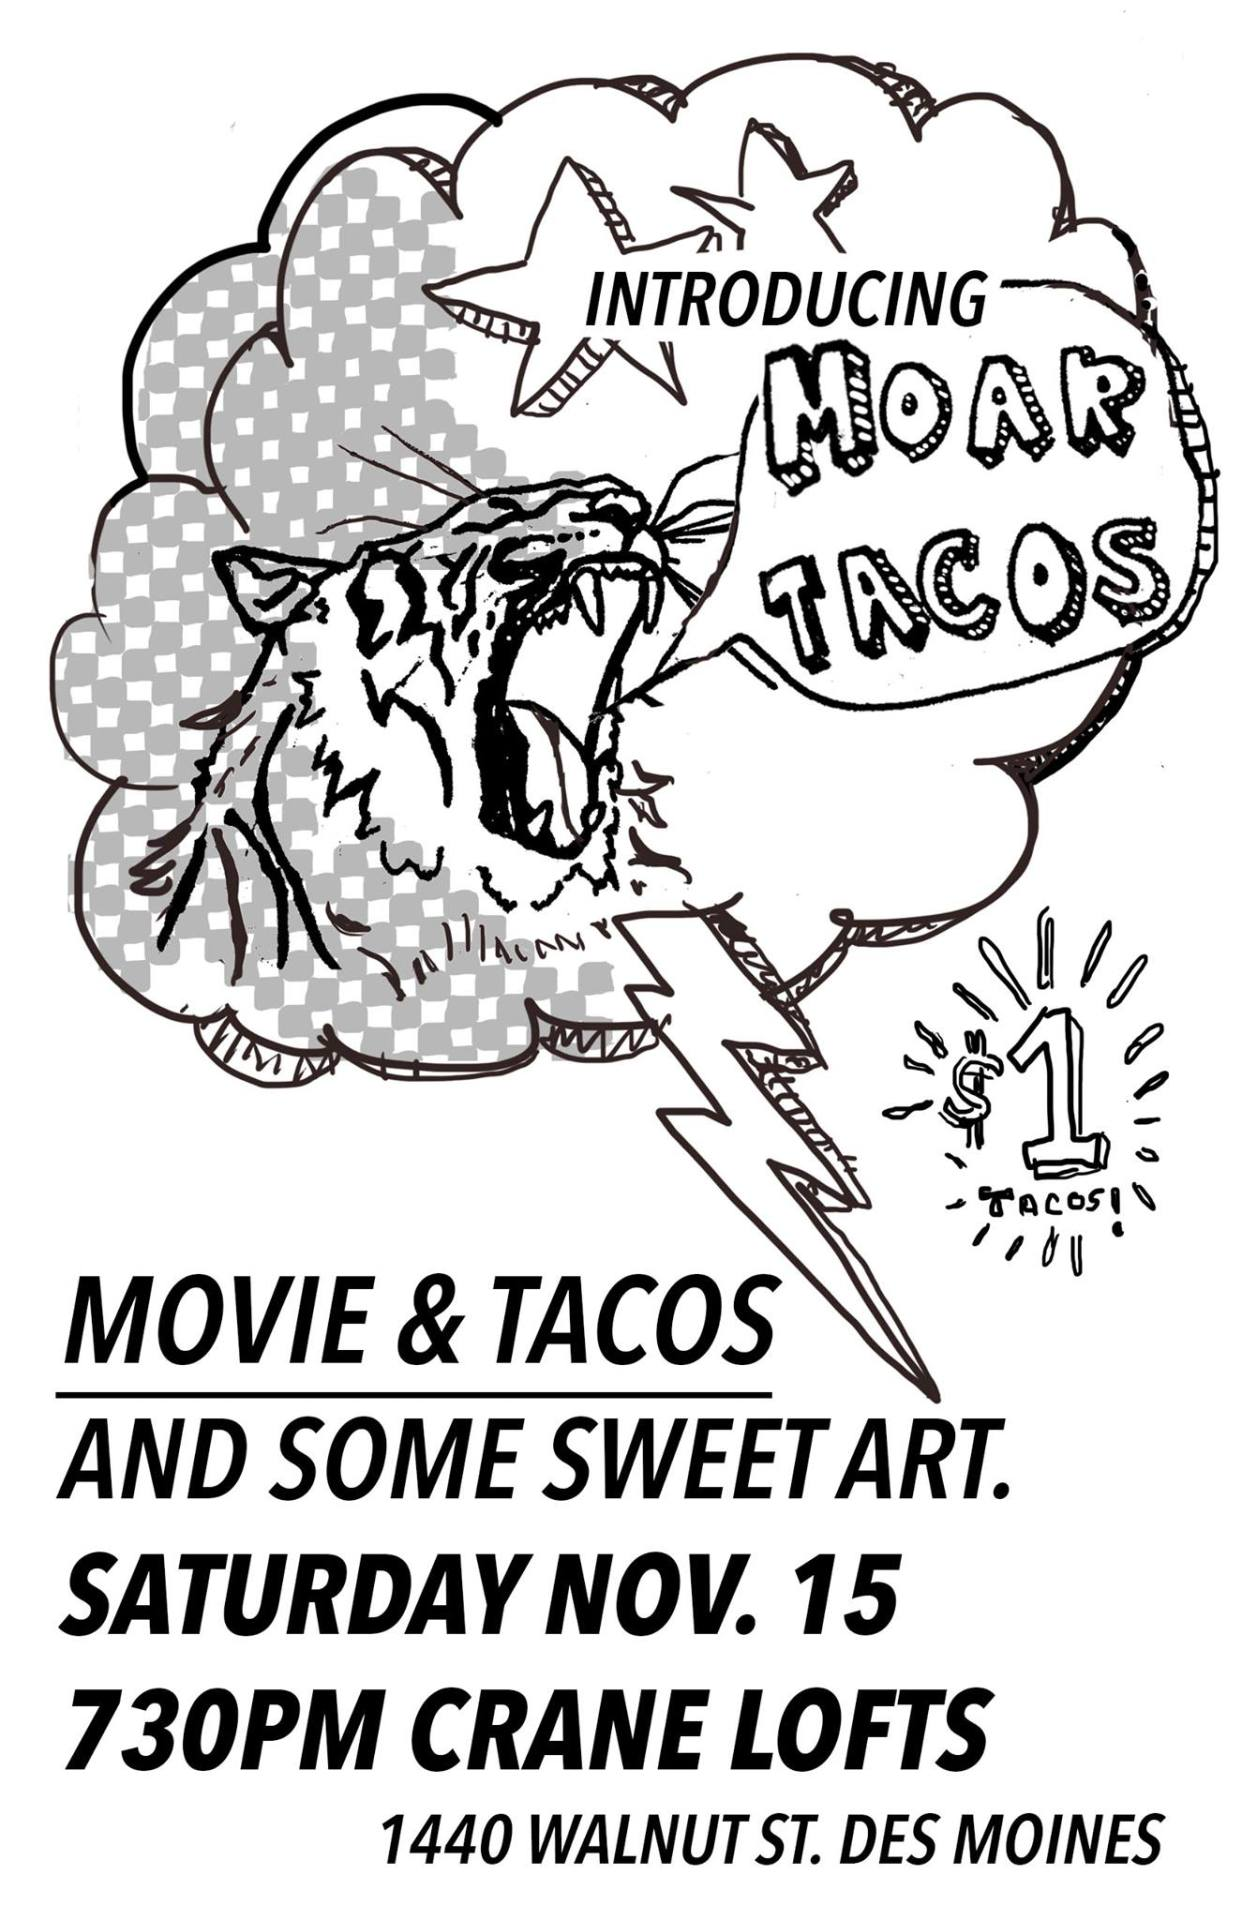 The introduction of MOAR TACOS enjoyed with a collection of some local art and projected movie.   P.S. $1 tacos and BYOB.    Crane Artist Lofts    1440 Walnut St, Des Moines, Iowa 50309